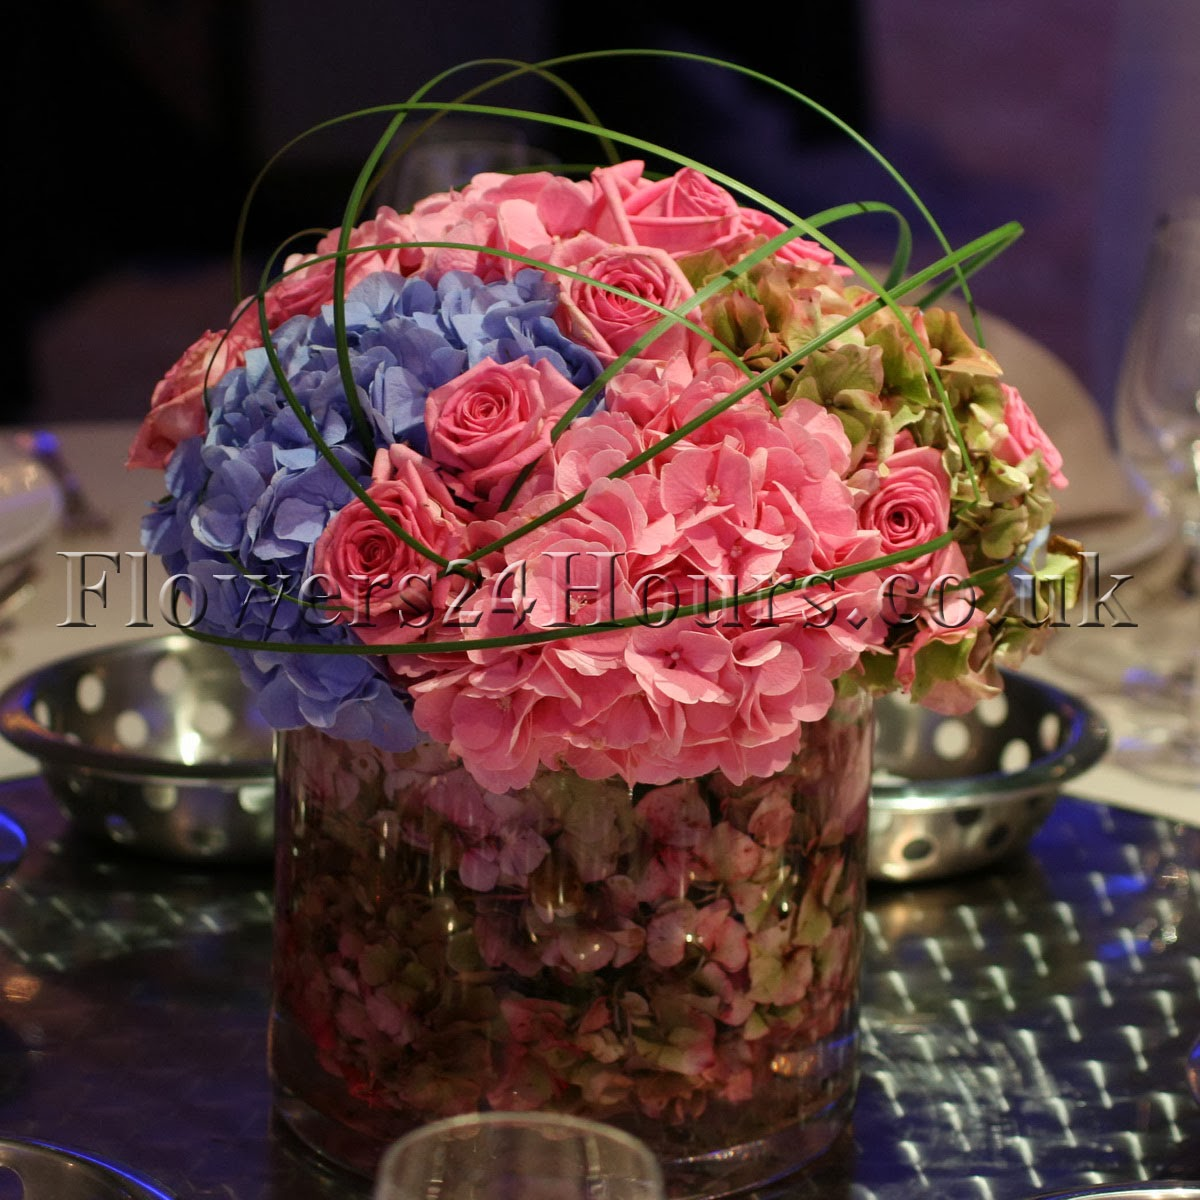 New inspiring selection of flower arrangements from uk flower flowers24hours flowers delivery uk florists online florist and gifts uk shop izmirmasajfo